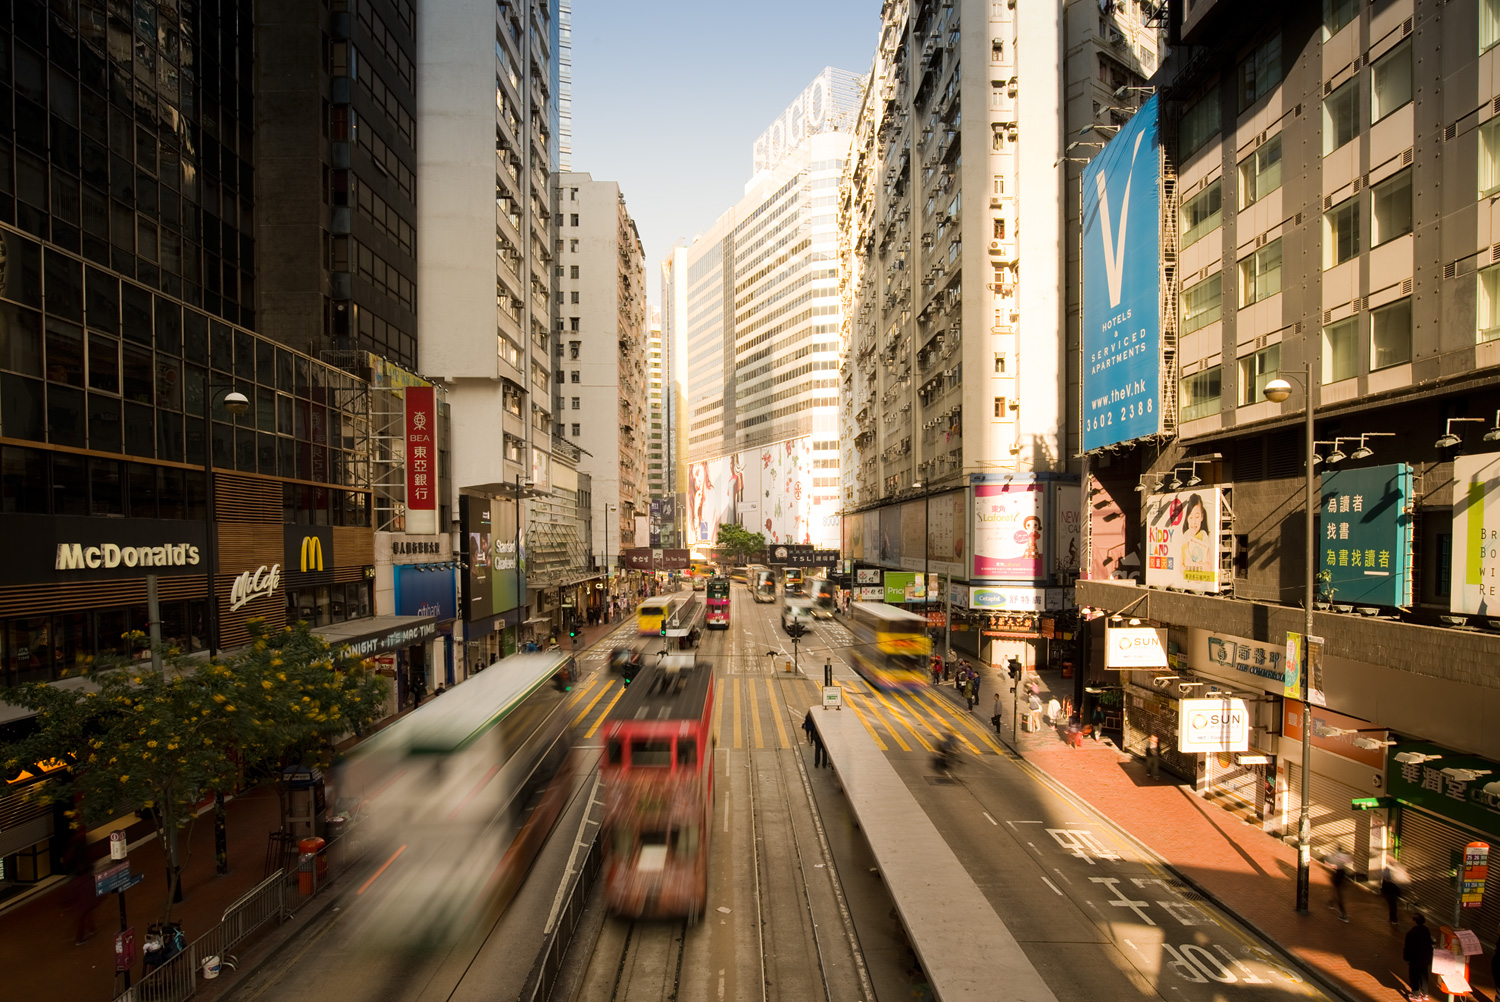 Hk 0144 - How to Search Potential Cityscape Photography Spots Online Before Traveling